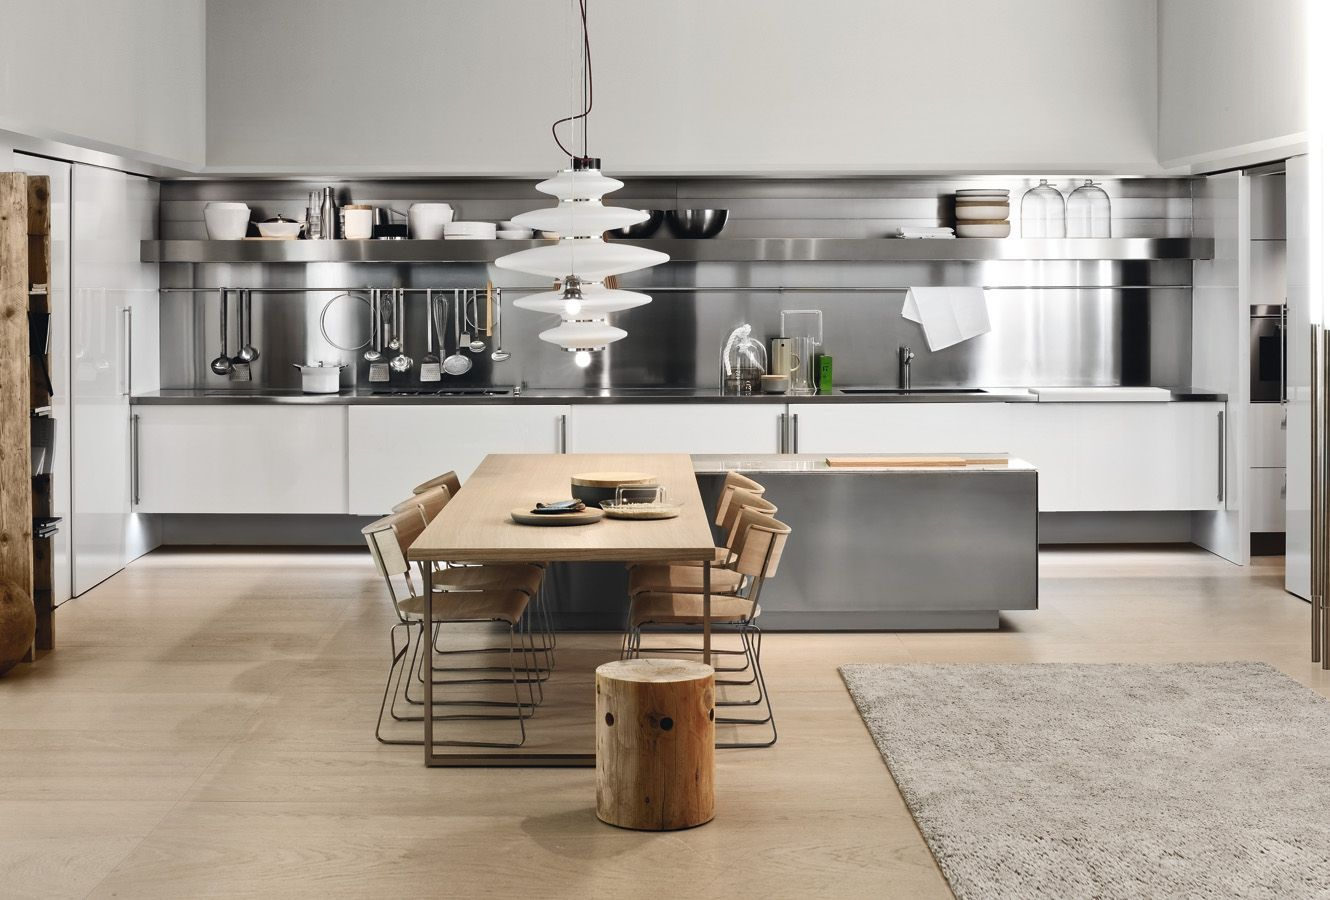 Contemporary Kitchen Design Fair Simple Kitchen With Aluminium Furniture Design For Small Space Design Ideas